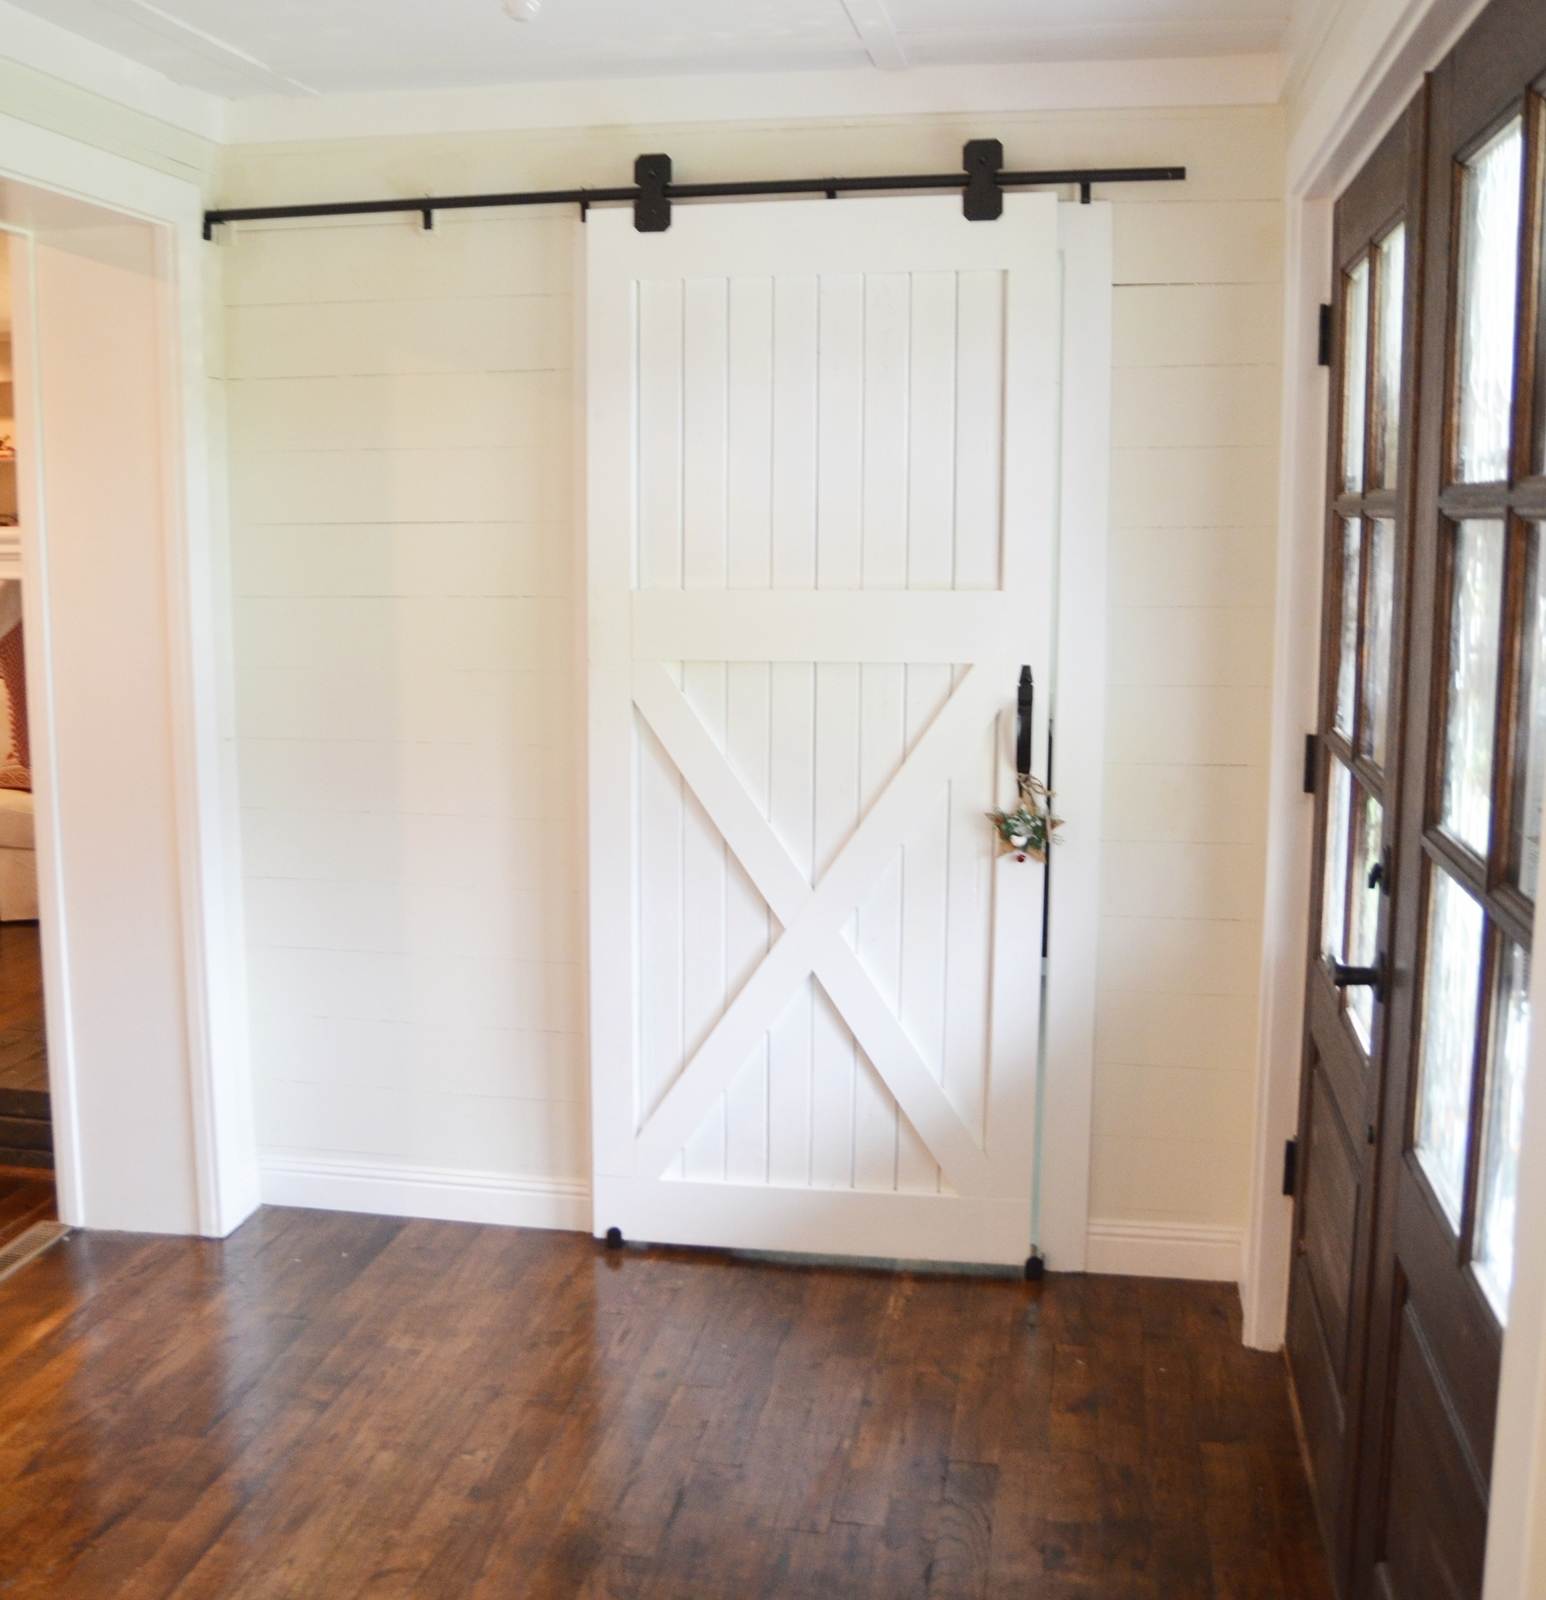 Diy barn door designs and tutorials from thrifty decor chick for Barn door designs